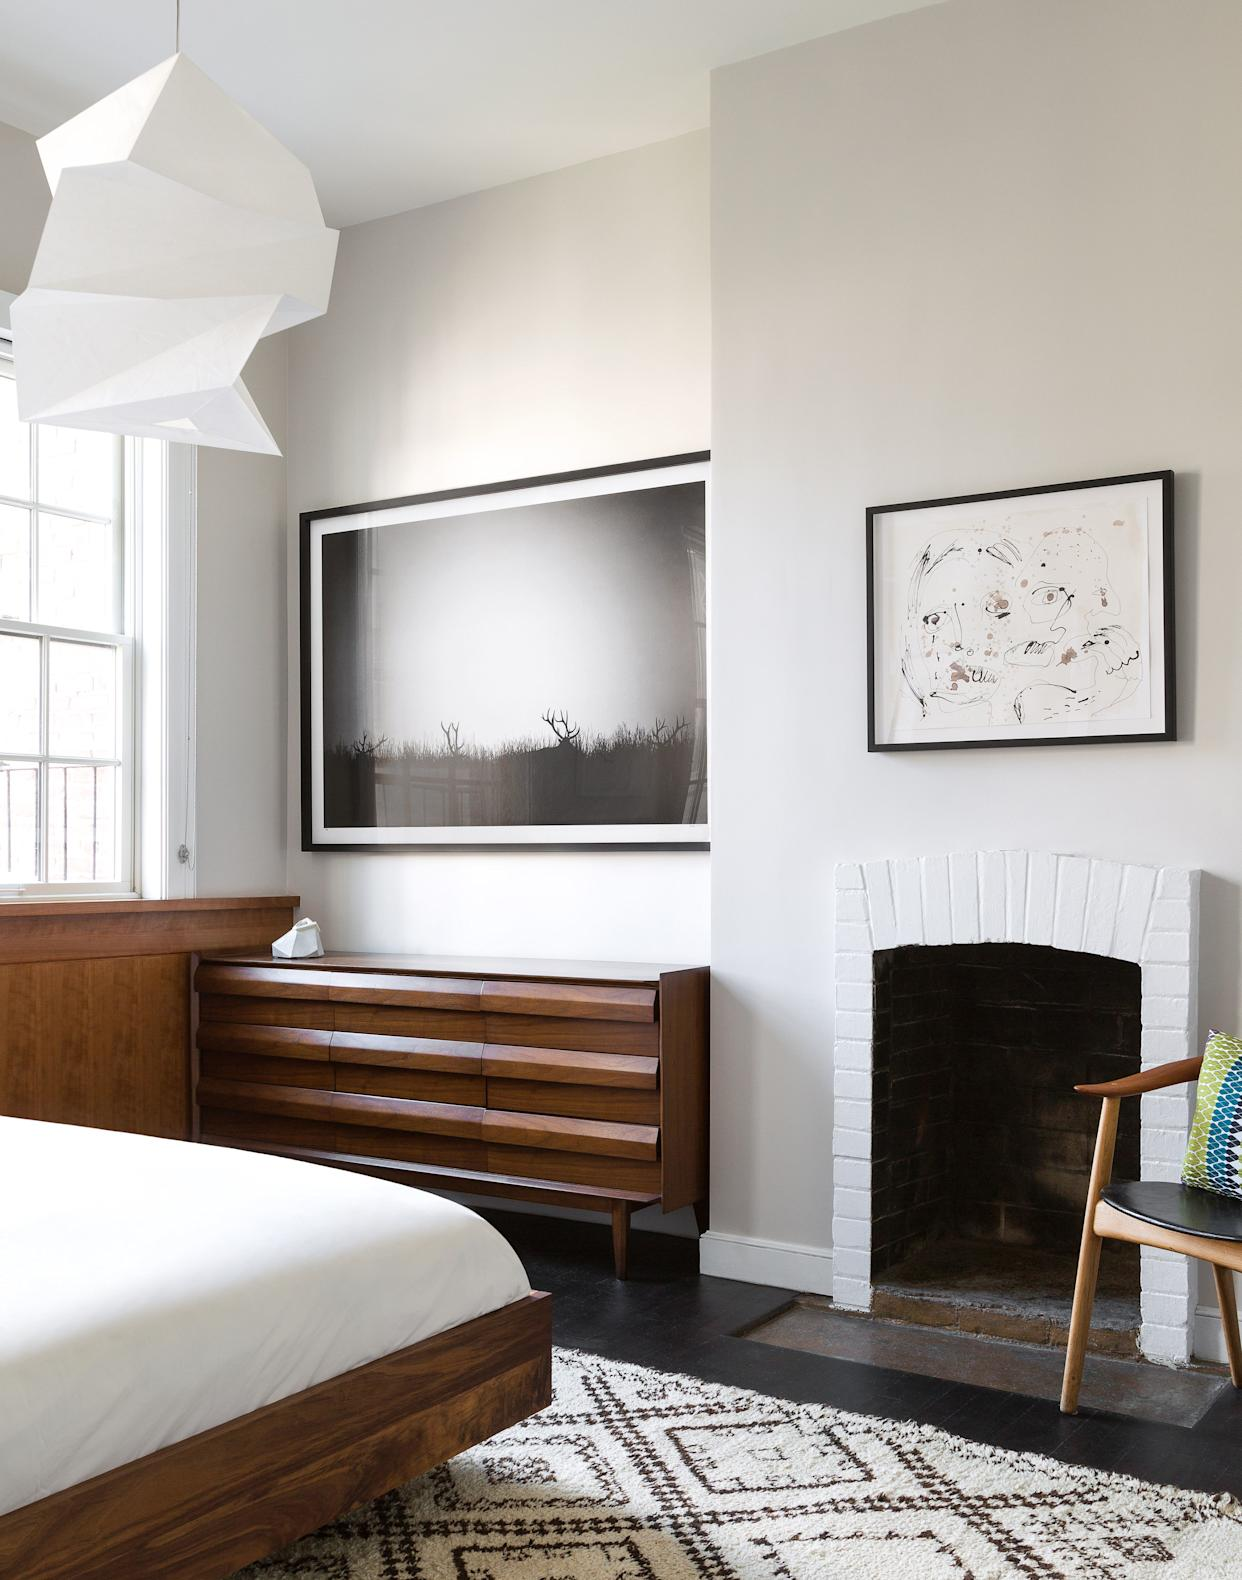 """<div class=""""caption""""> A <a href=""""https://www.architecturaldigest.com/story/midcentury-modern-nyc-apartment-japanese-design-reddymade?mbid=synd_yahoo_rss"""" rel=""""nofollow noopener"""" target=""""_blank"""" data-ylk=""""slk:Manhattan bedroom"""" class=""""link rapid-noclick-resp"""">Manhattan bedroom</a> by Suchi Reddy of Reddymade Design is furnished with the essentials. </div> <cite class=""""credit"""">Photo: Ball & Albanese</cite>"""